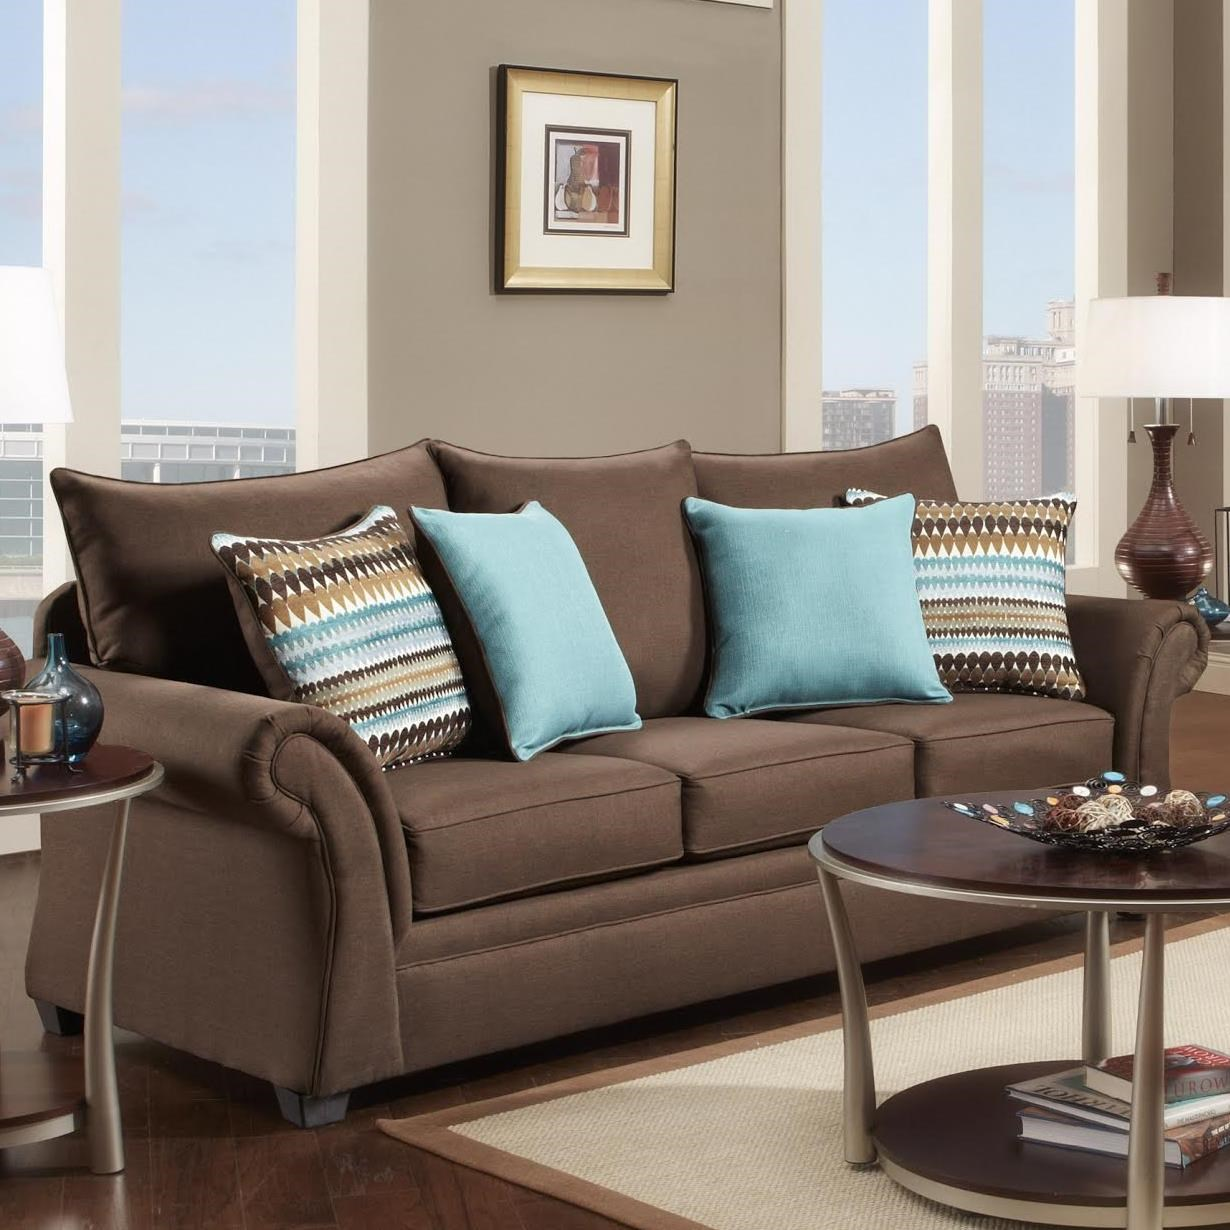 Washington Furniture 1560 Transitional Sofa With Rolled Arms   Adcock  Furniture   Sofas